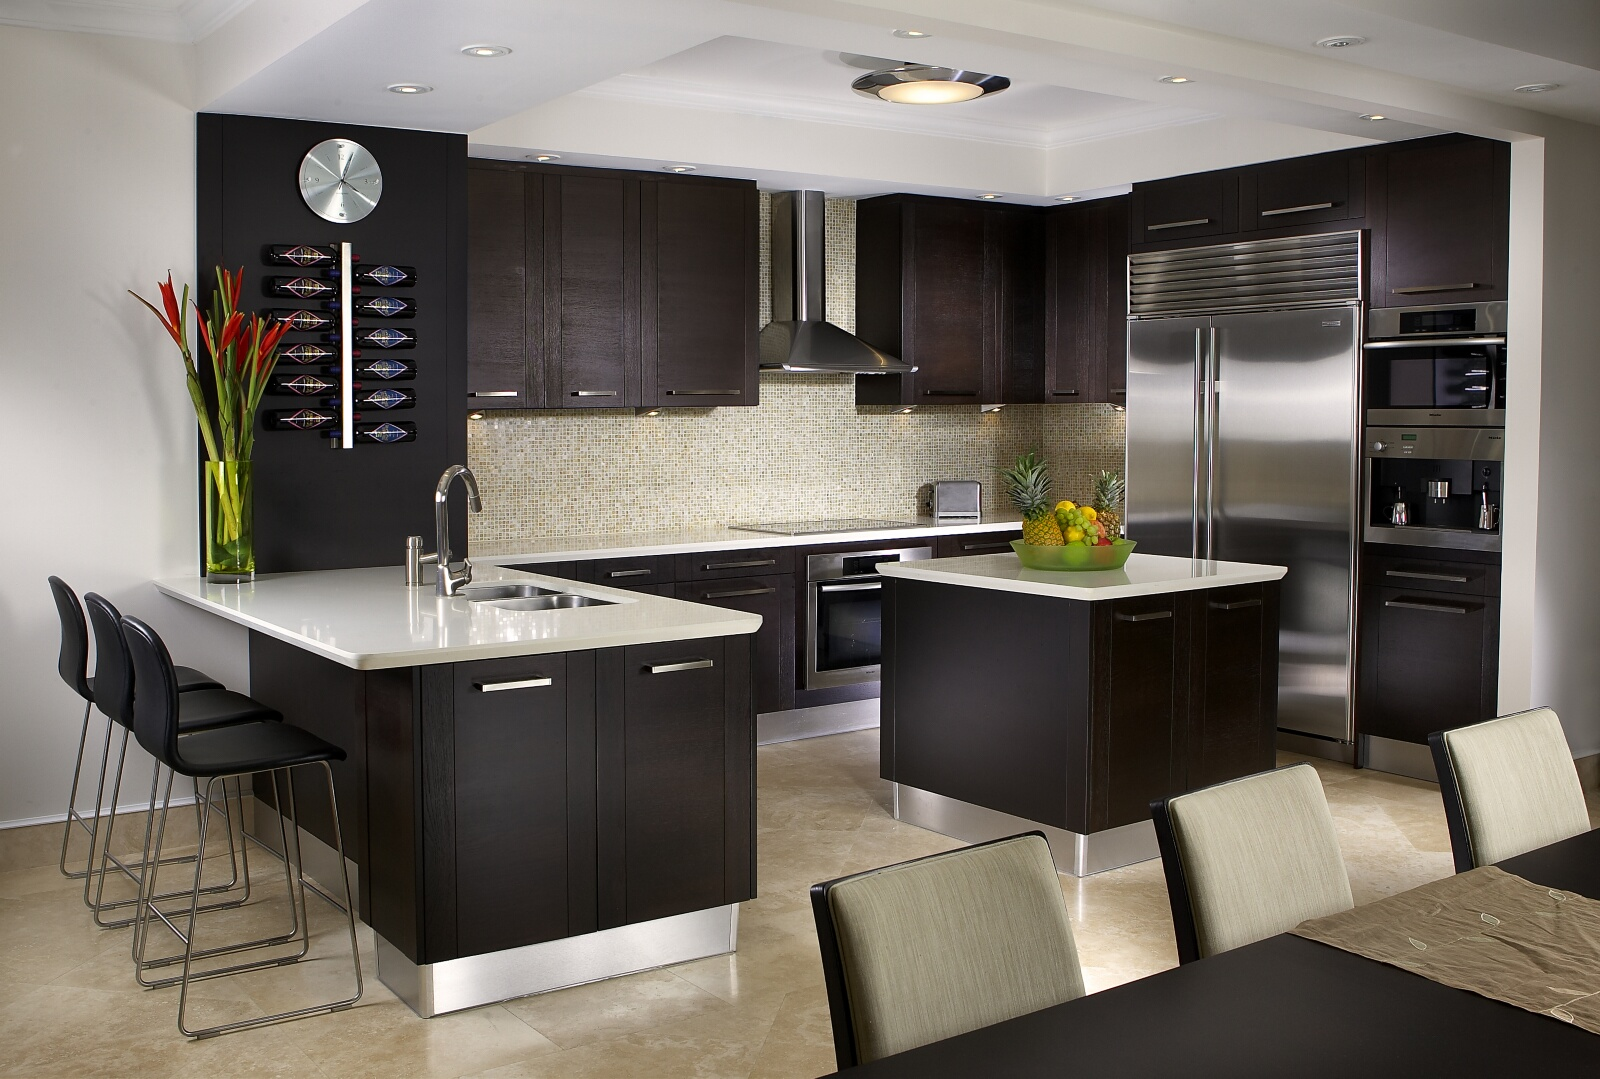 Kitchen interior design services miami florida for Interior decoration of kitchen pictures